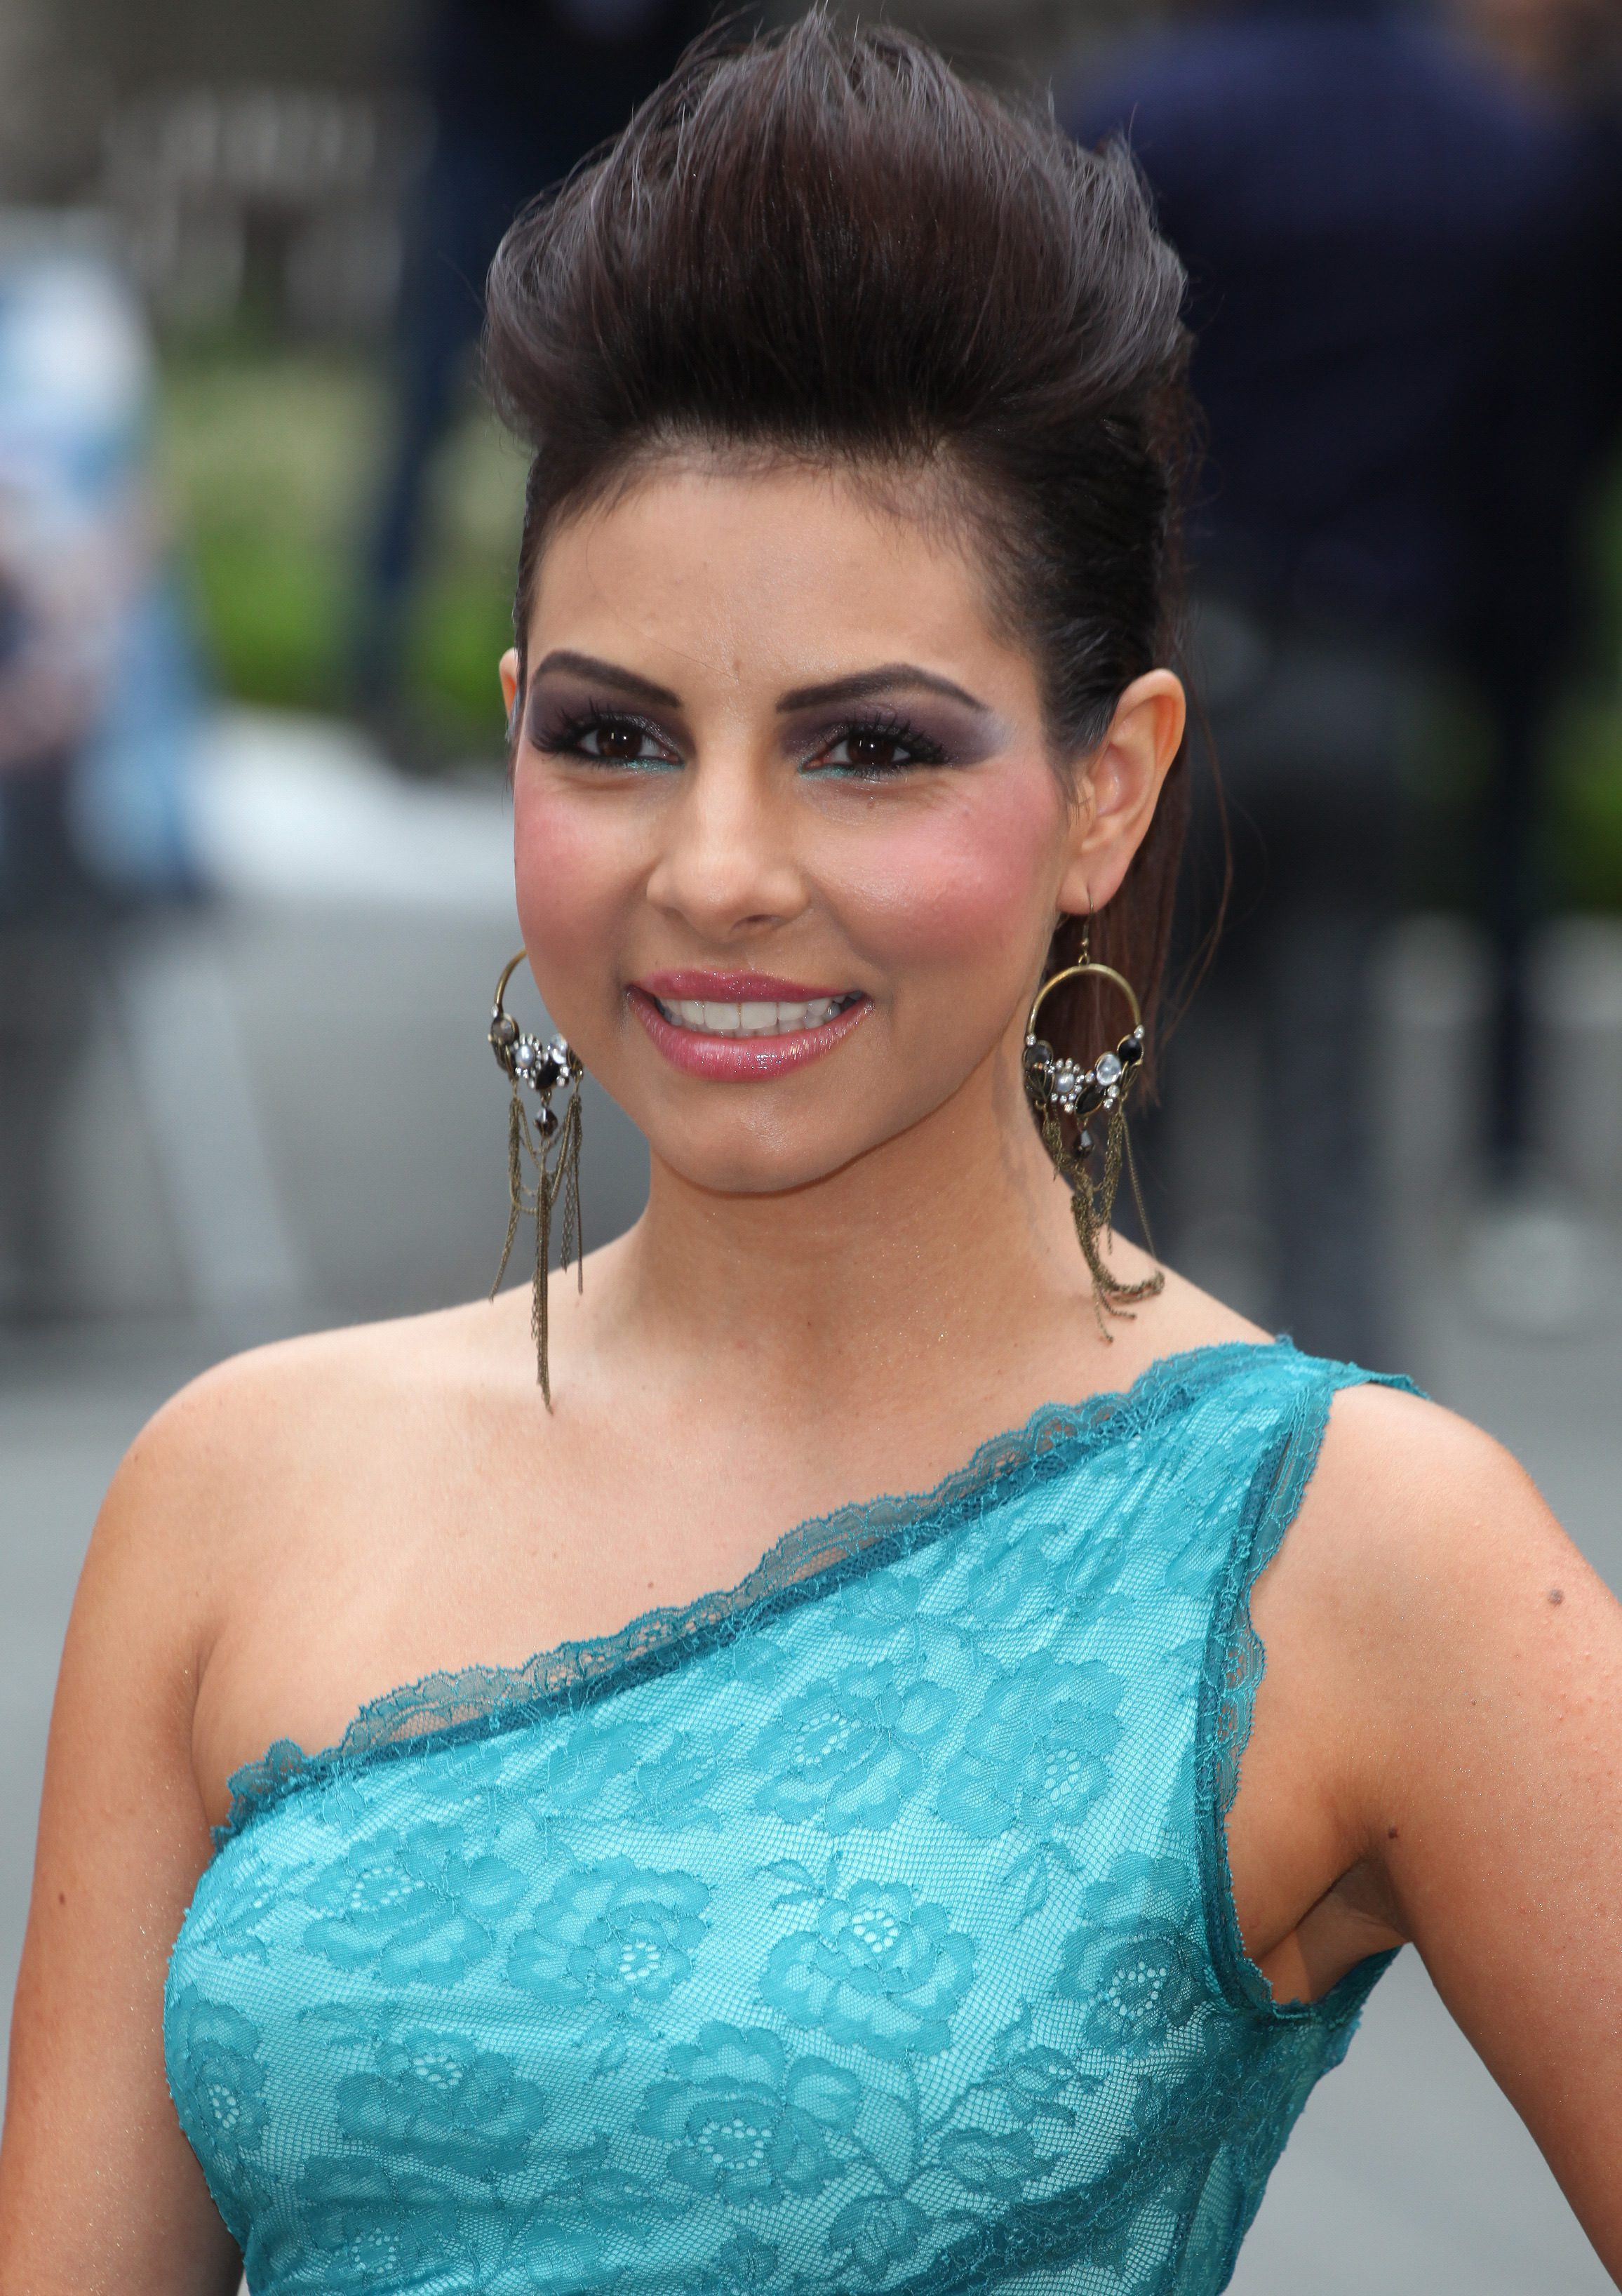 Roxanne Pallett's Top Brushed Up and Sides Tucked